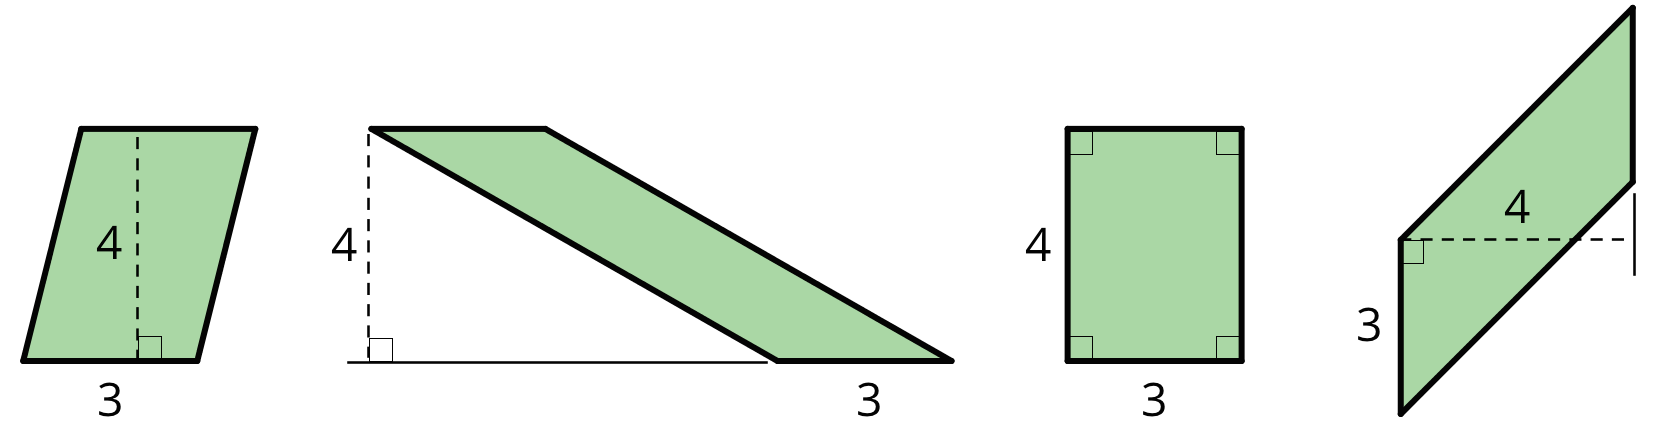 Four different parallelograms. Each parallelogram has a base labeled 3 and a height labeled 4.